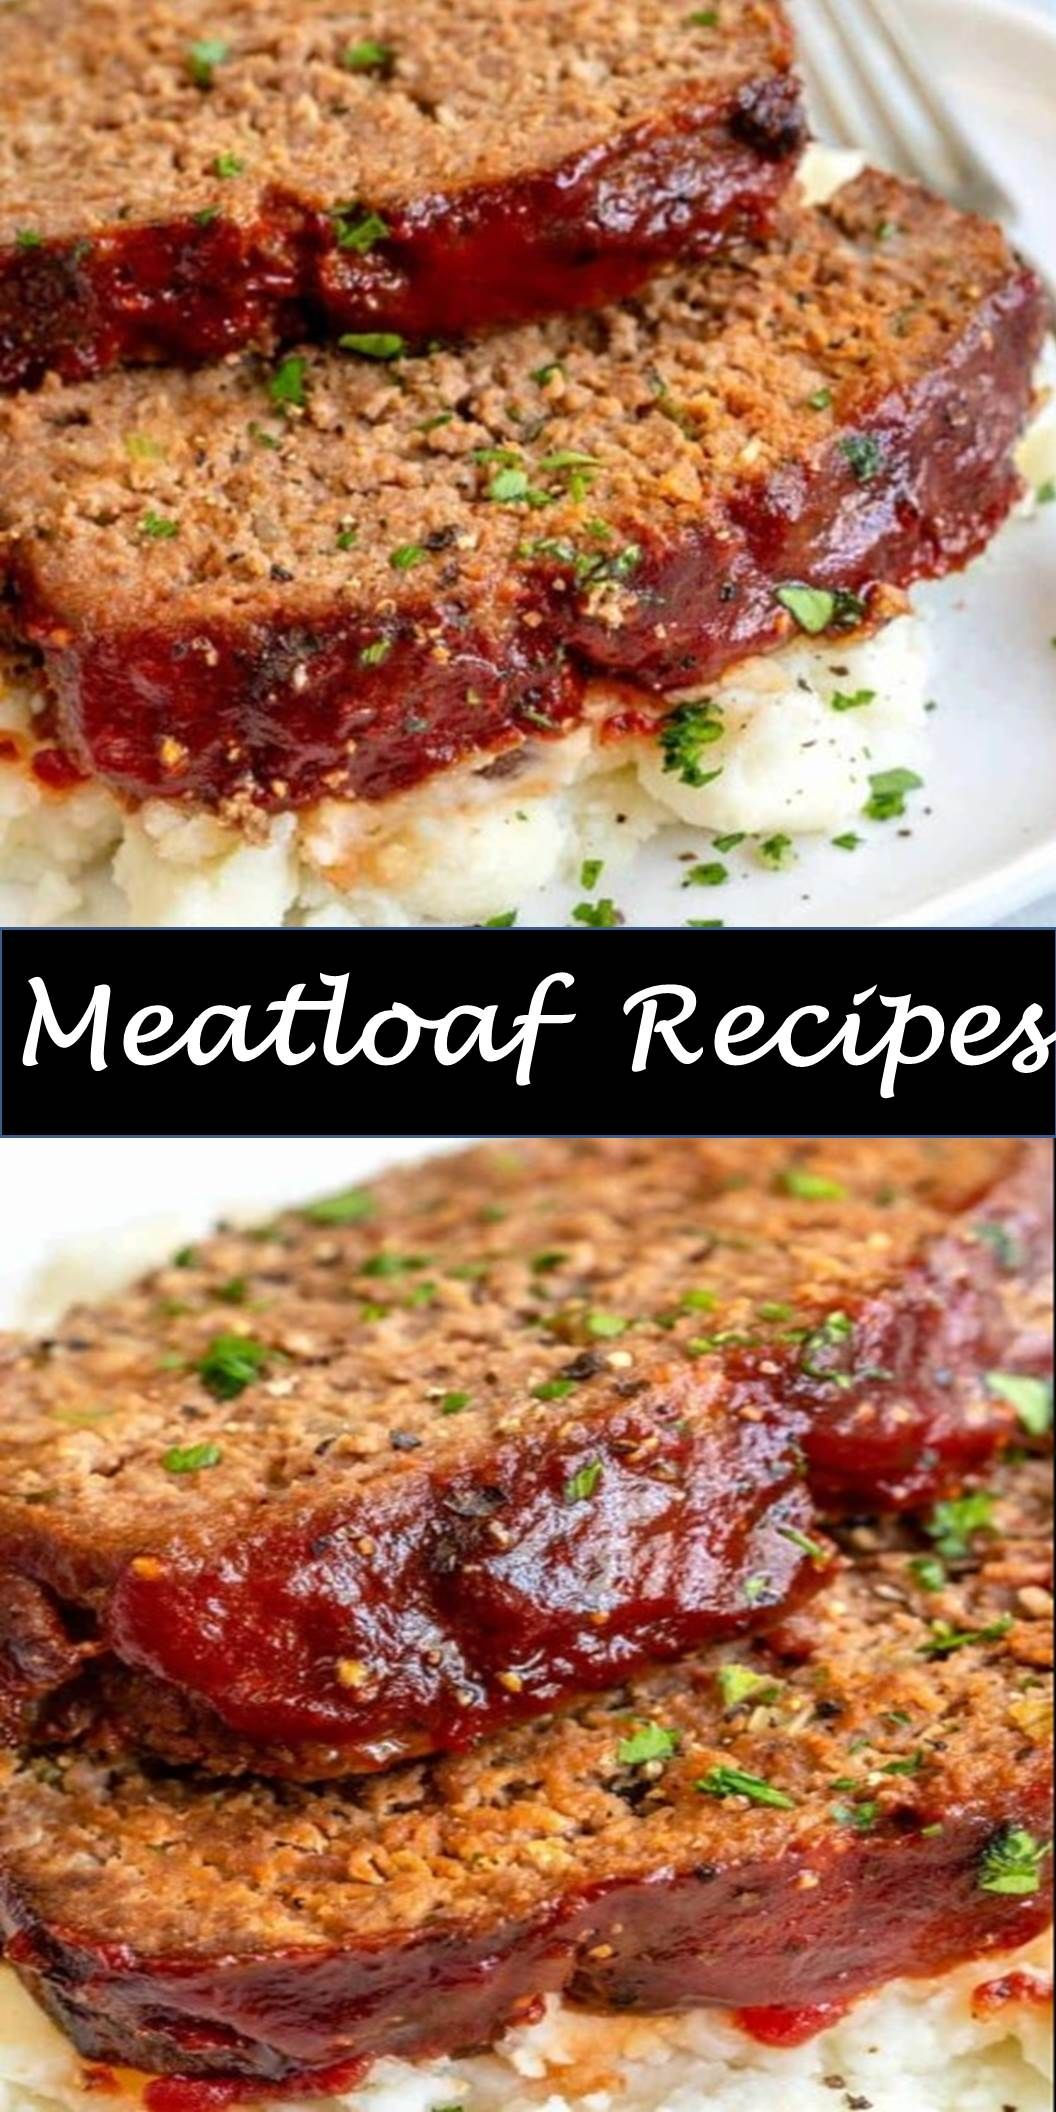 Best Dinner Meatloaf Recipes Delicious And Healthy Family Choice Special Food And Drink Meatloaf The Best Meatloaf Reci Recipes Meatloaf Meatloaf Recipes